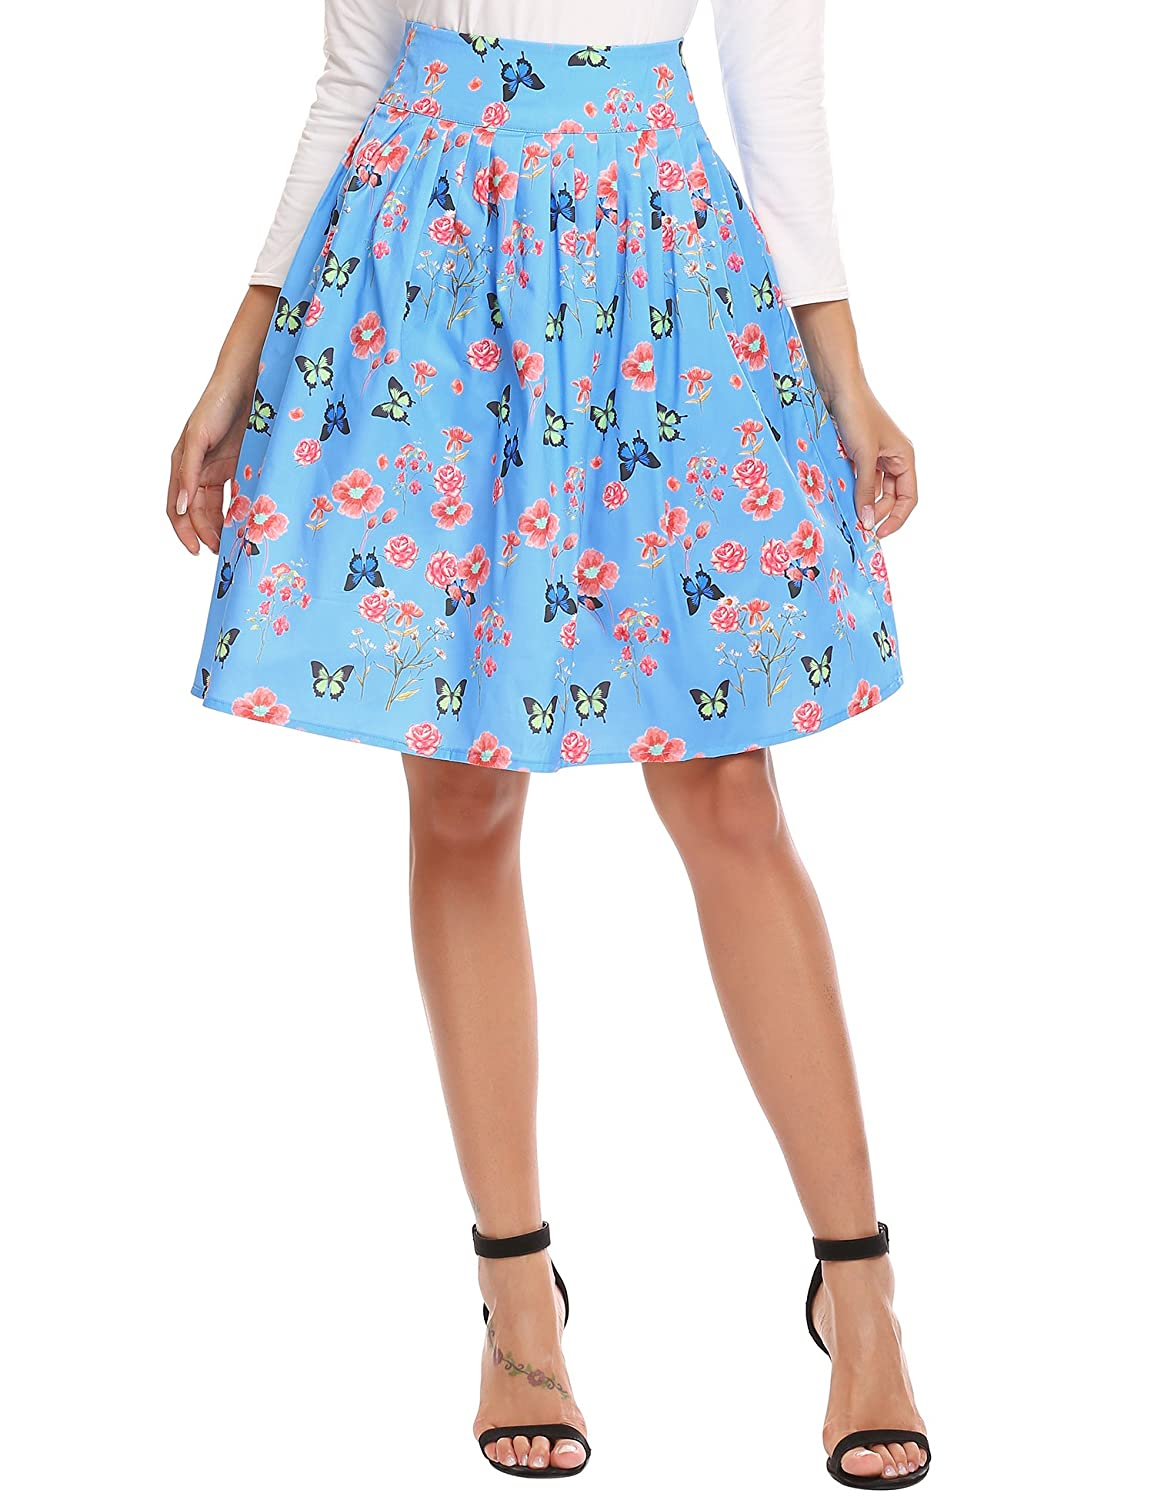 c44eb0d667 Midi A-line Pleated Floral Skirt, Women's Flare Flower Print Vintage High  Waist Knee Length Flowy Skirts for Girls Sky Blue Small at Amazon Women's  Clothing ...